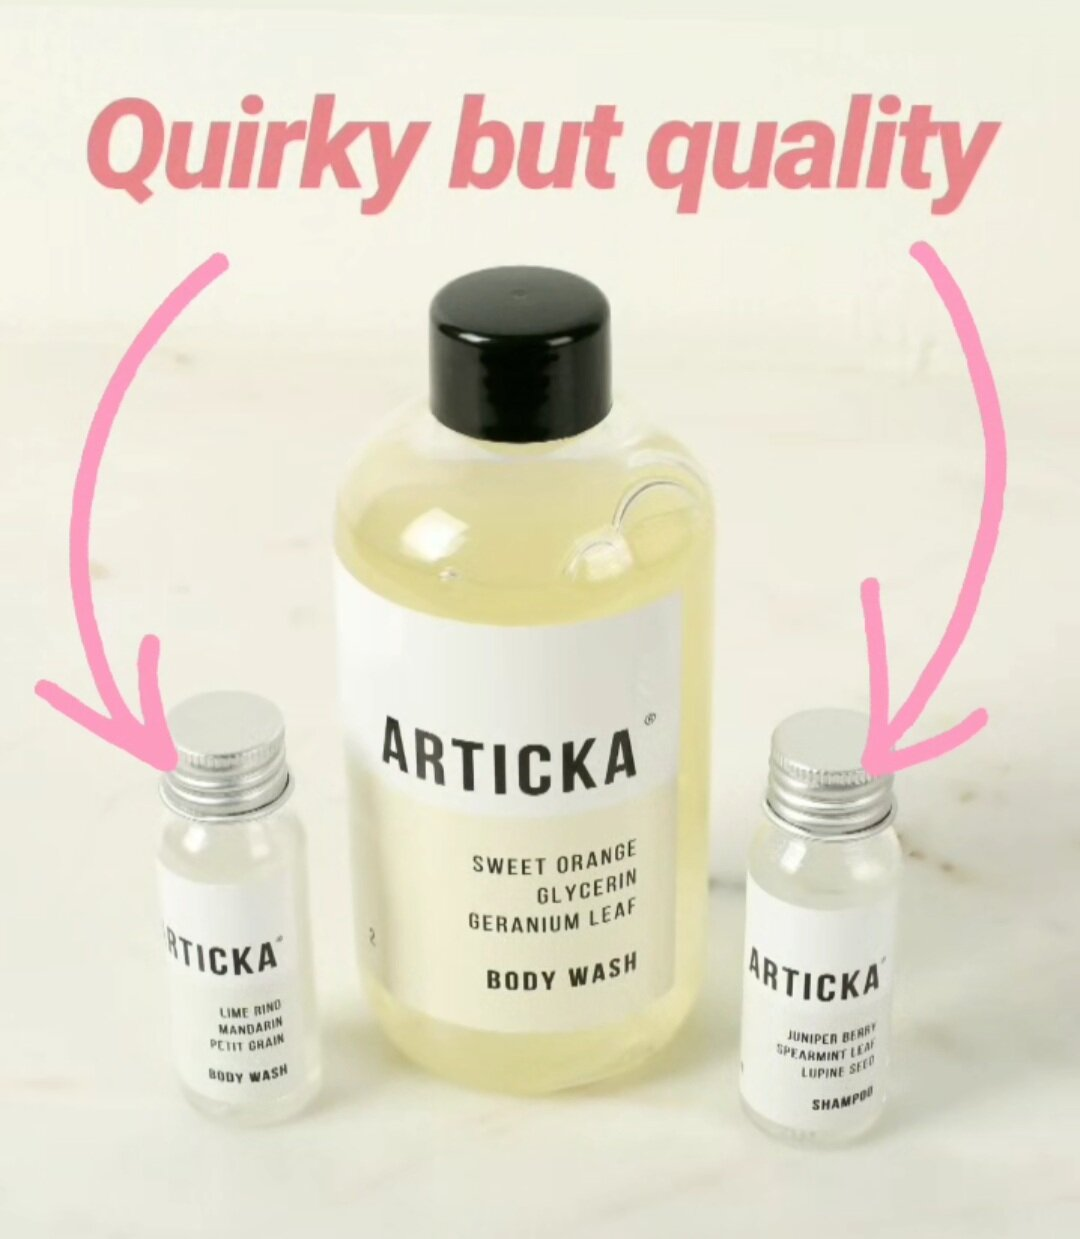 Articka Quirky but quality